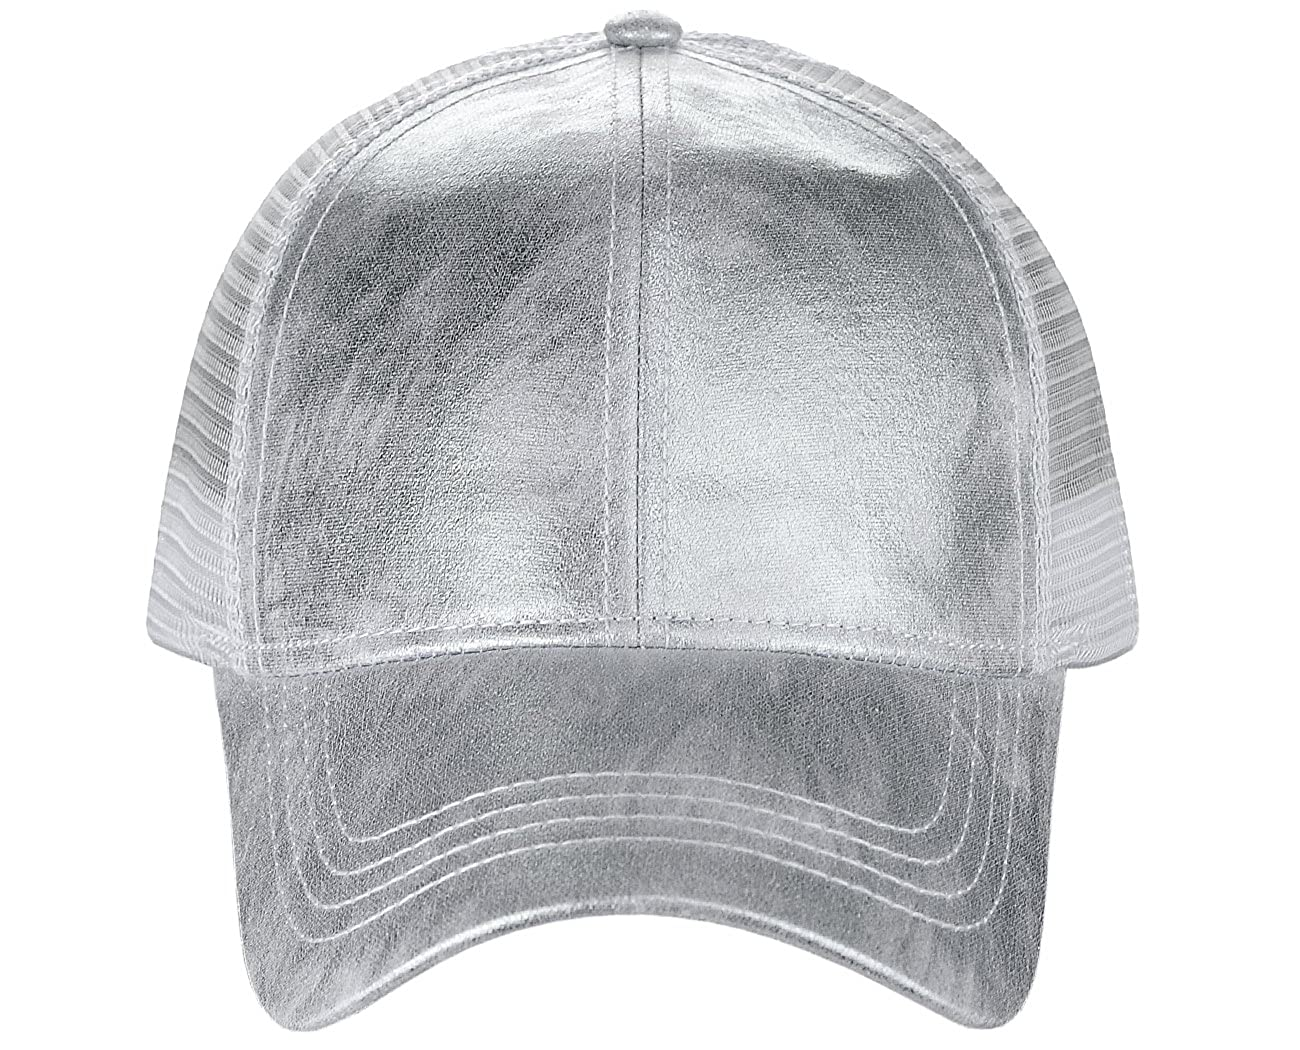 c53054189 CC Unisex Metallic Glossy Feel Front Panel Adjustable Mesh Trucker Baseball  Cap